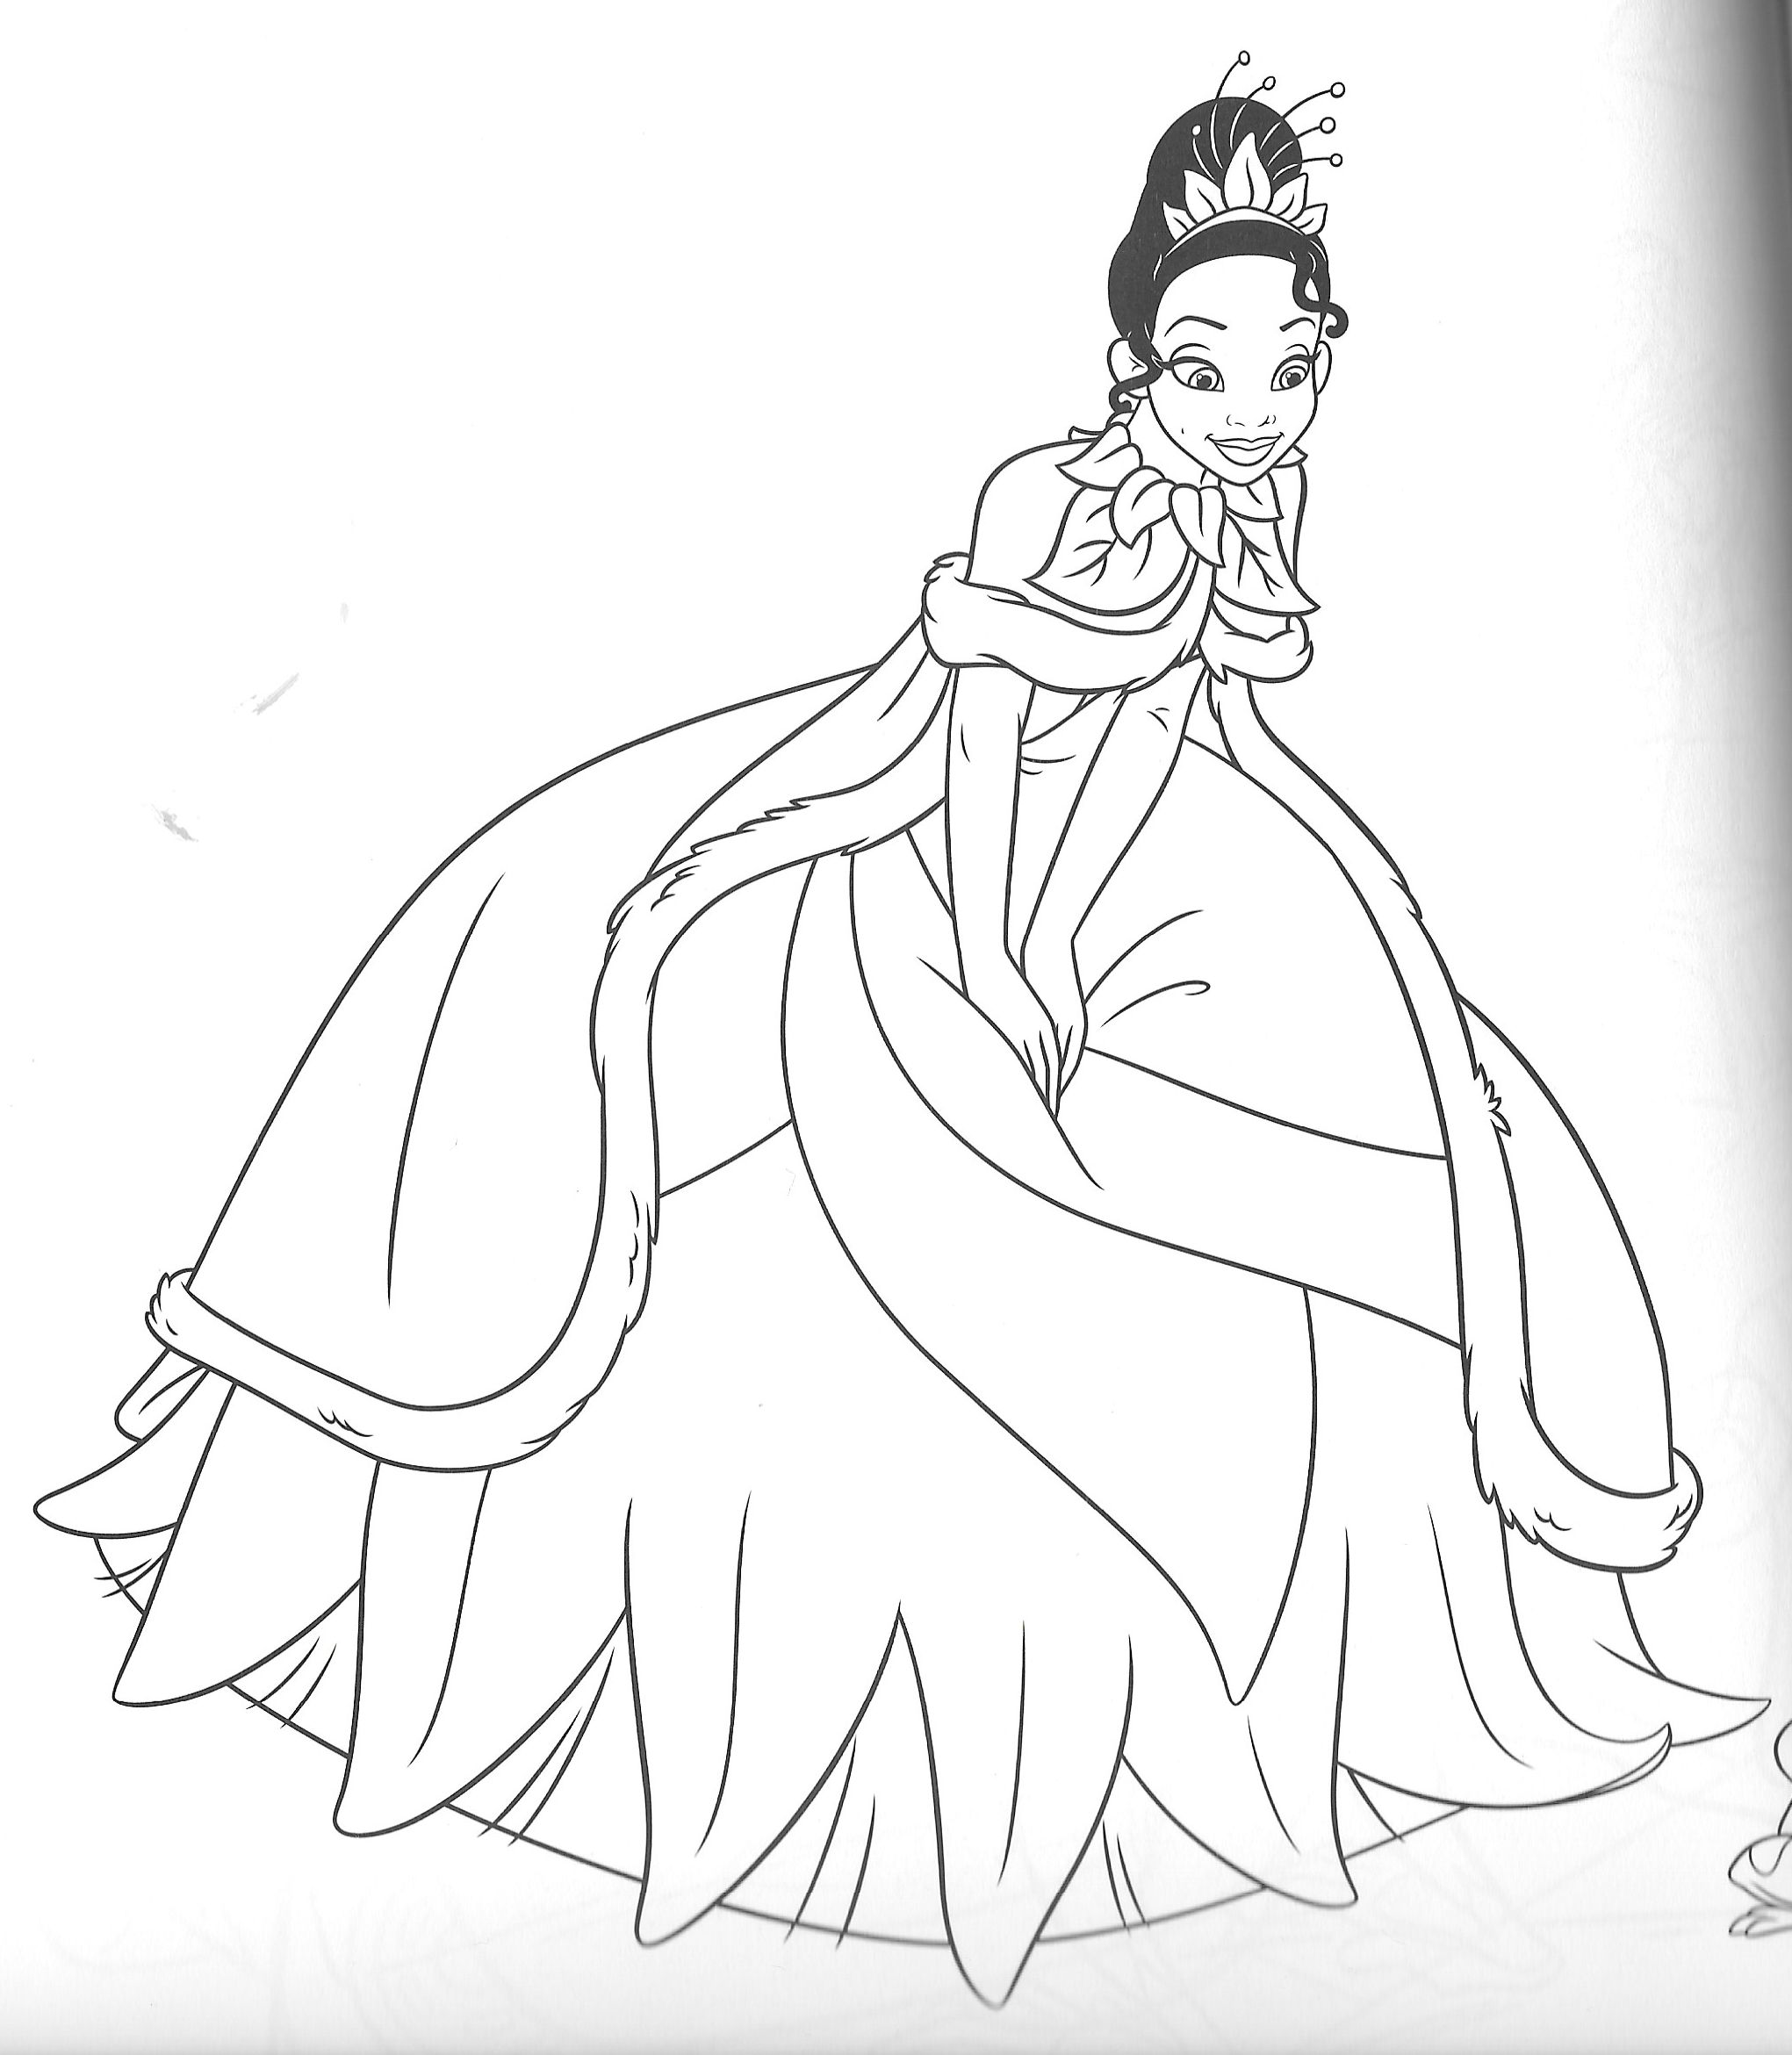 Pin By Melissa Chase On Color Me Happy Disney Princess Coloring Pages Disney Princess Colors Princess Coloring Pages